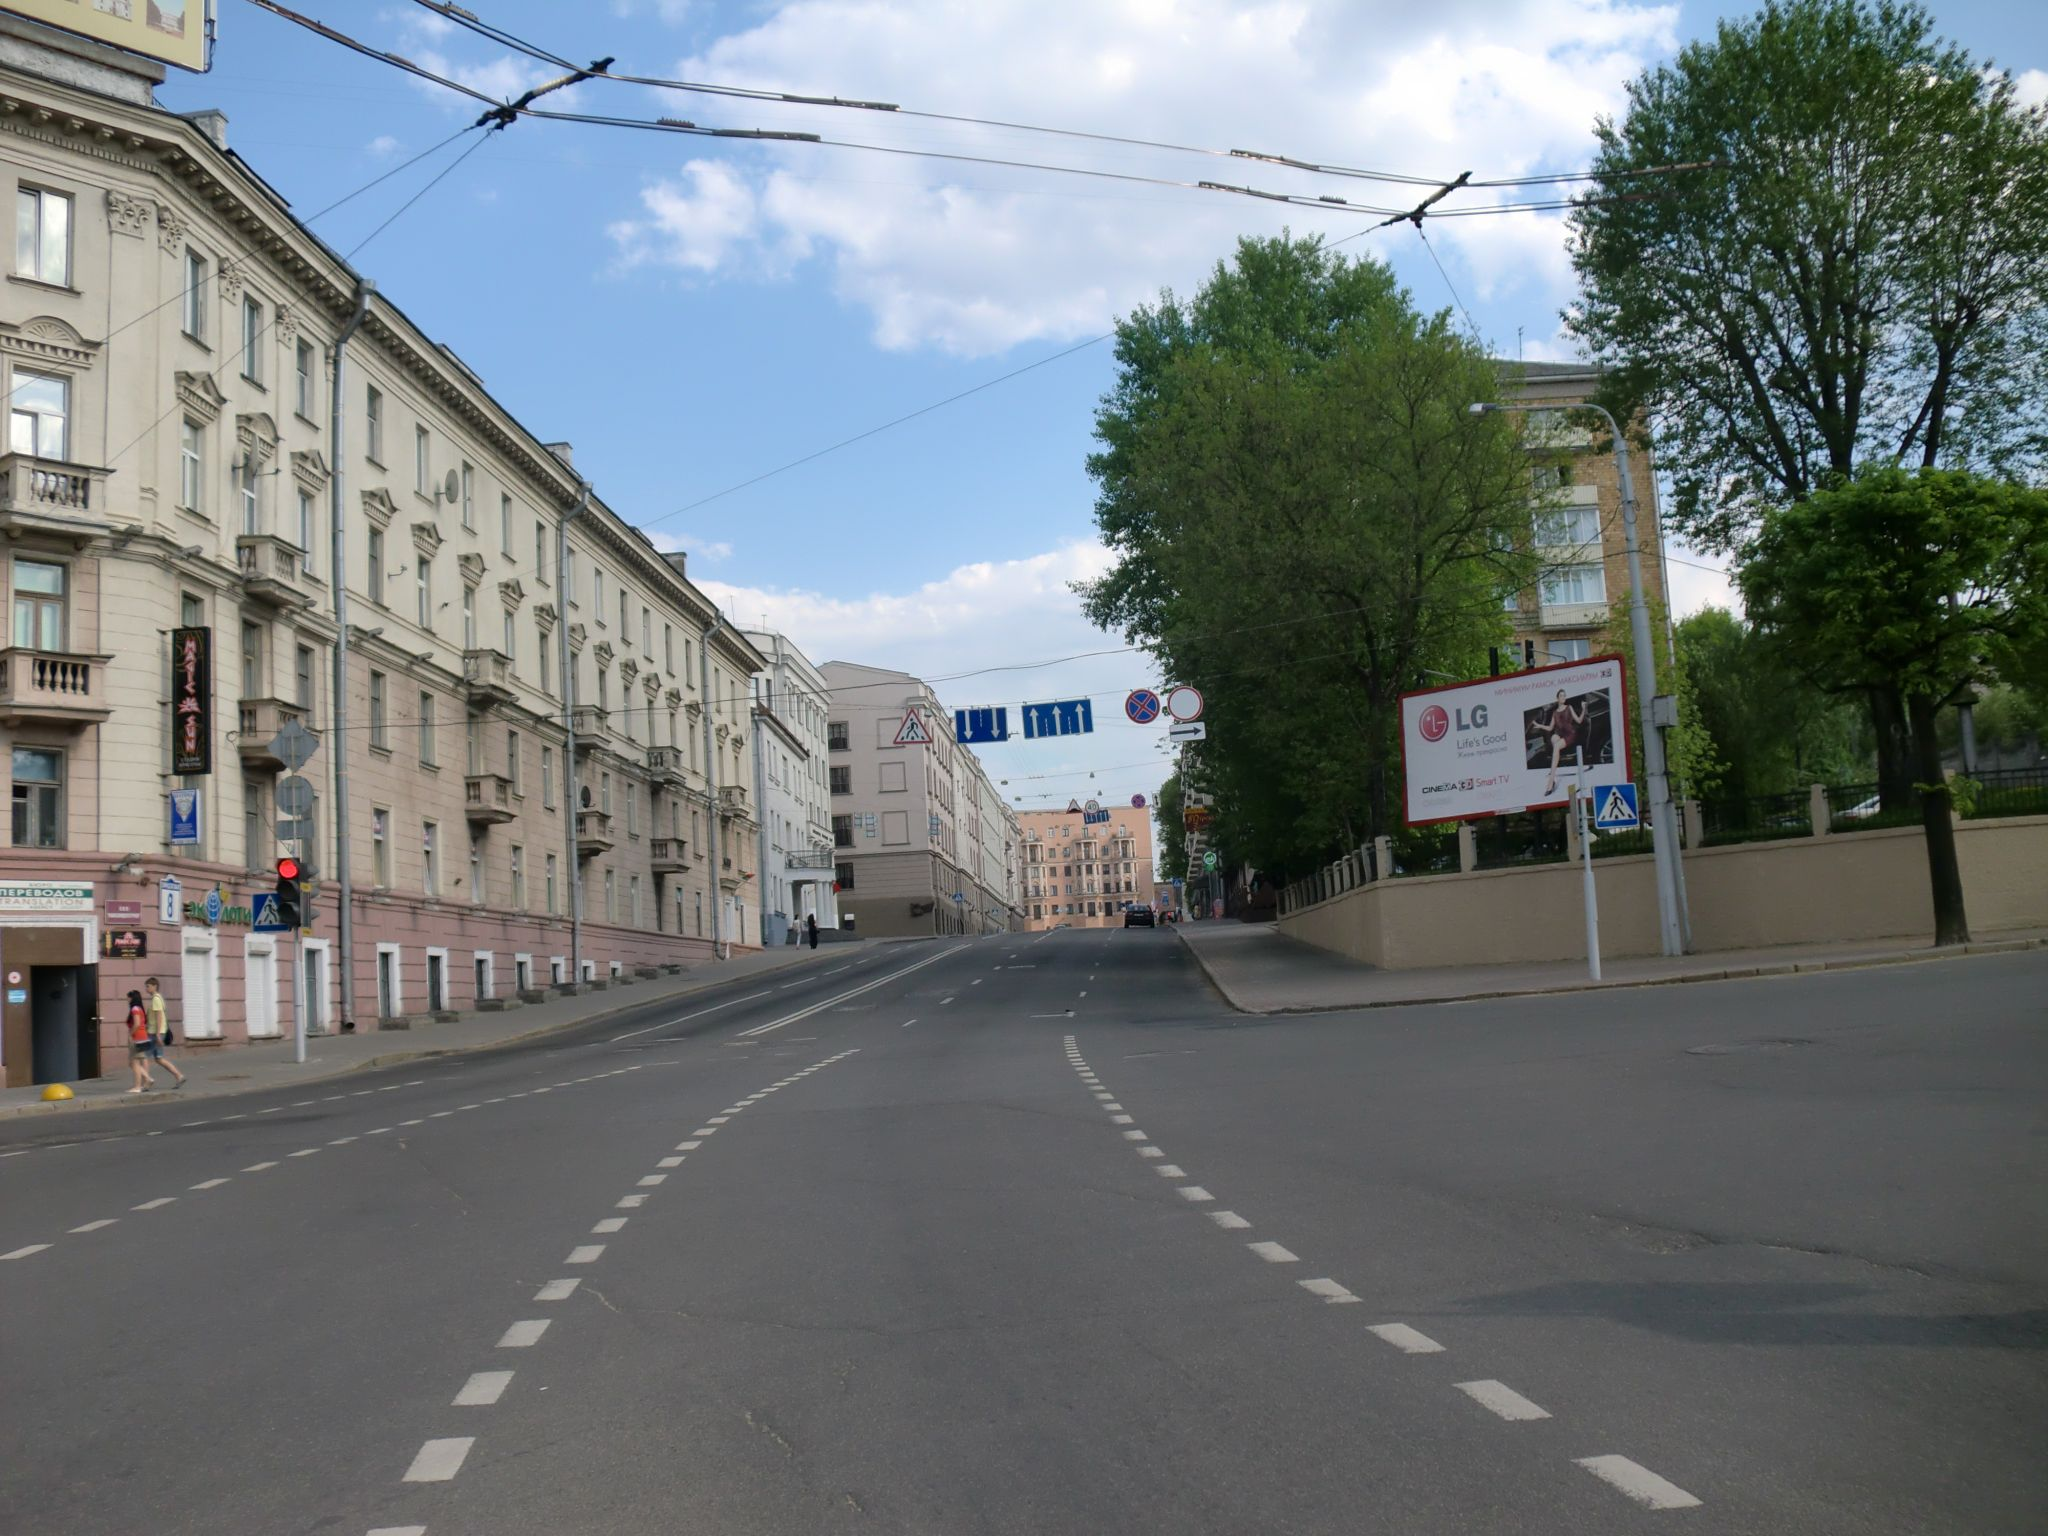 Minsk city 9 - Minsk, 1 amazing city you have to see